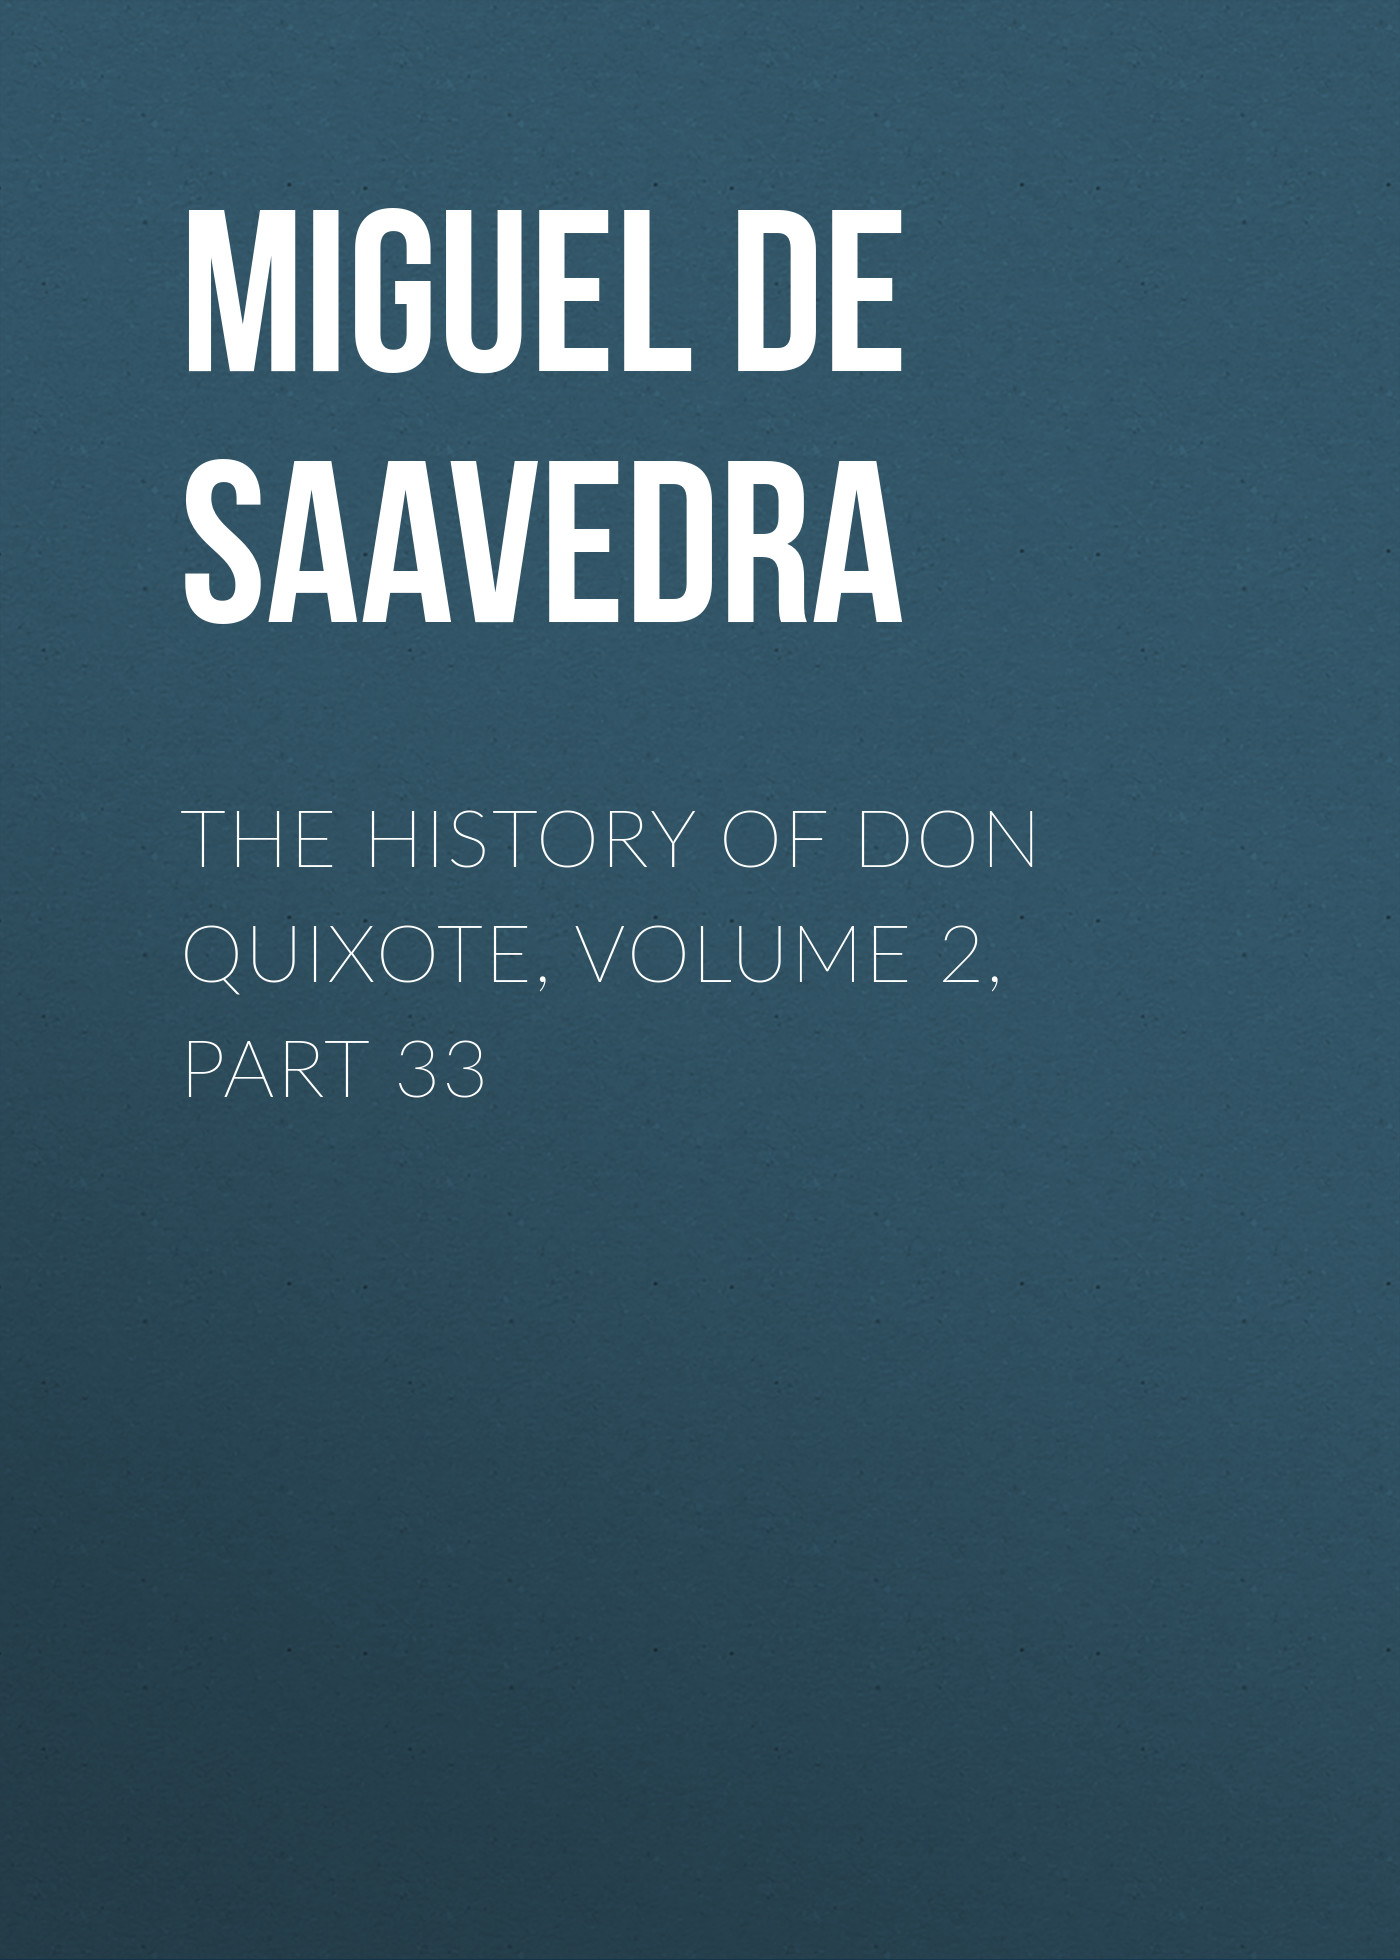 the history of don quixote volume 2 part 33